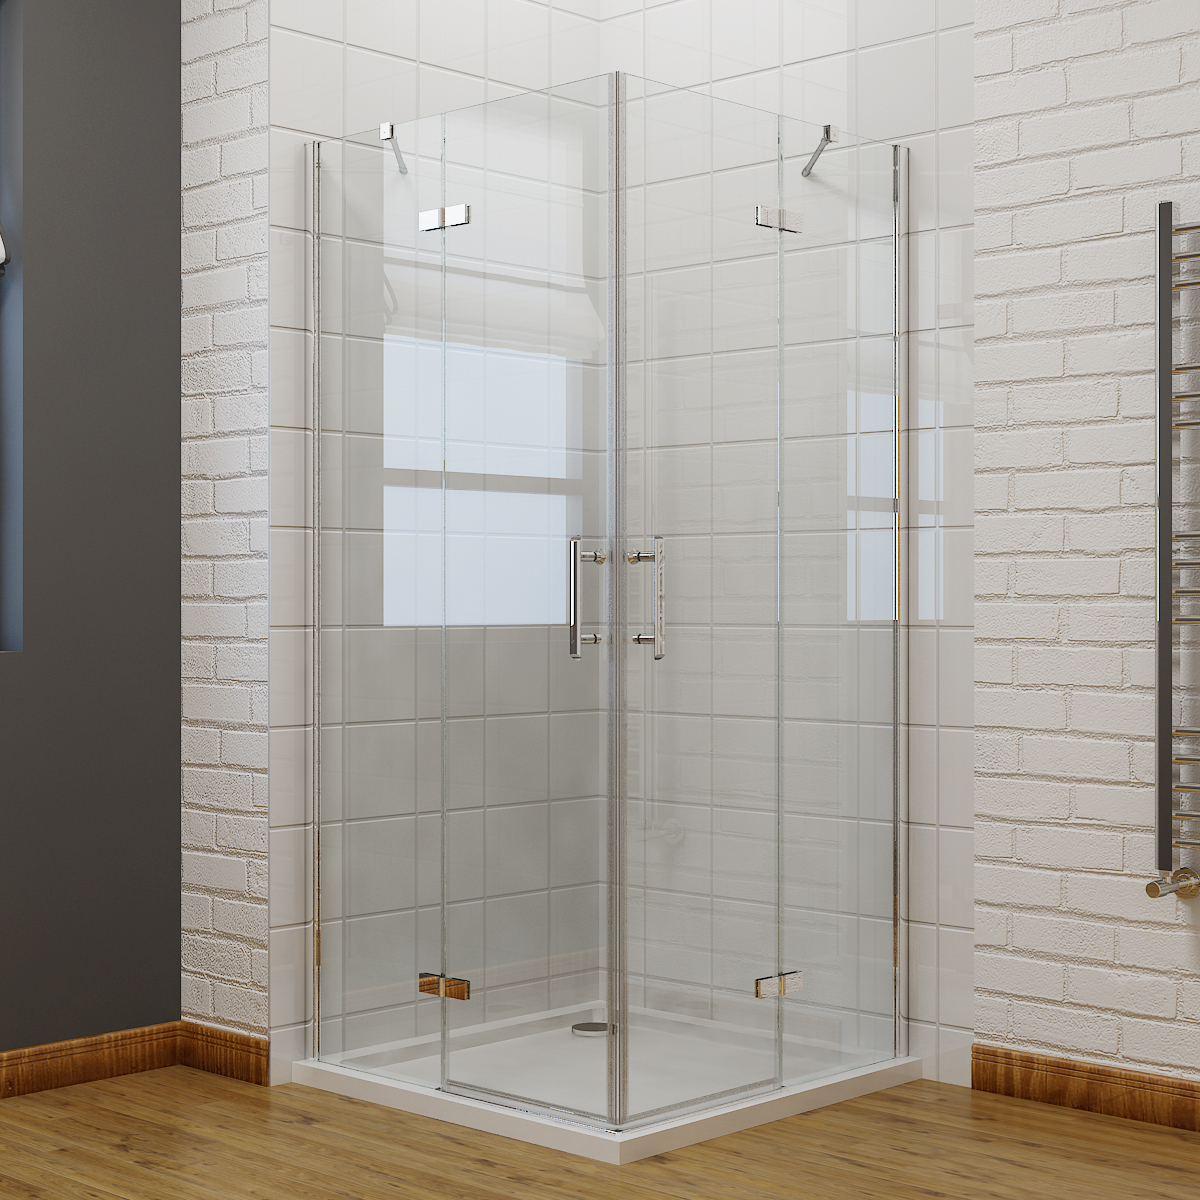 Frameless Hinge Corner Entry Shower Enclosure Glass Screen Walk In ...